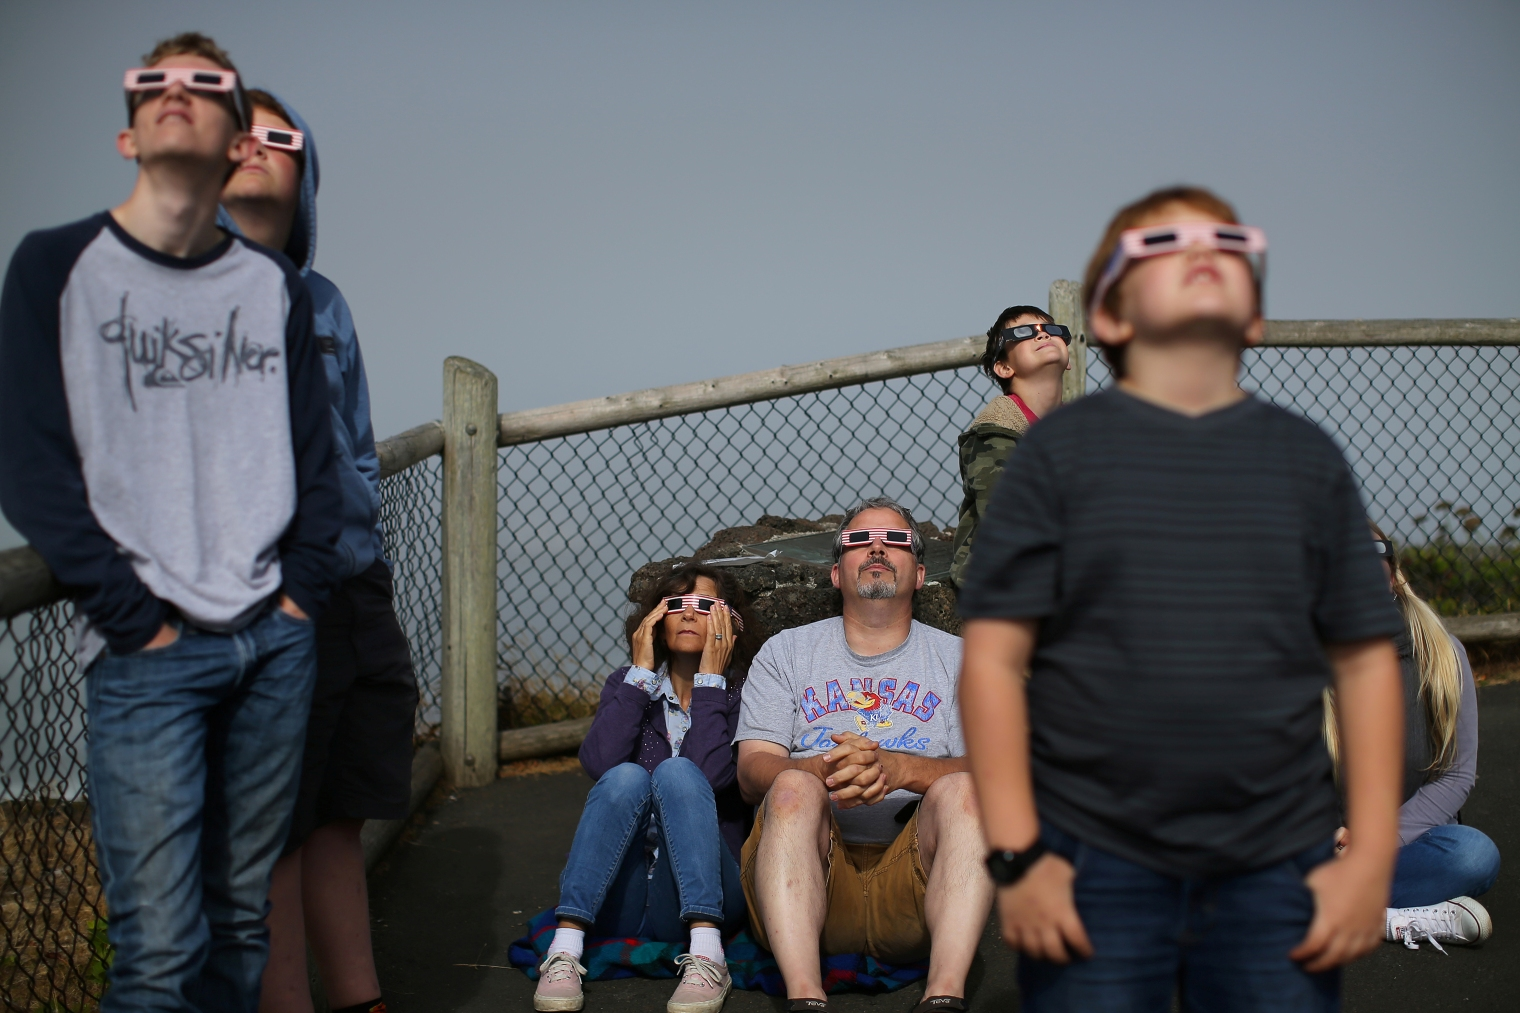 A boy uses solar viewing glasses as the sun emerges through fog cover before the solar eclipse in Depoe Bay, Oregon on Aug. 21, 2017.